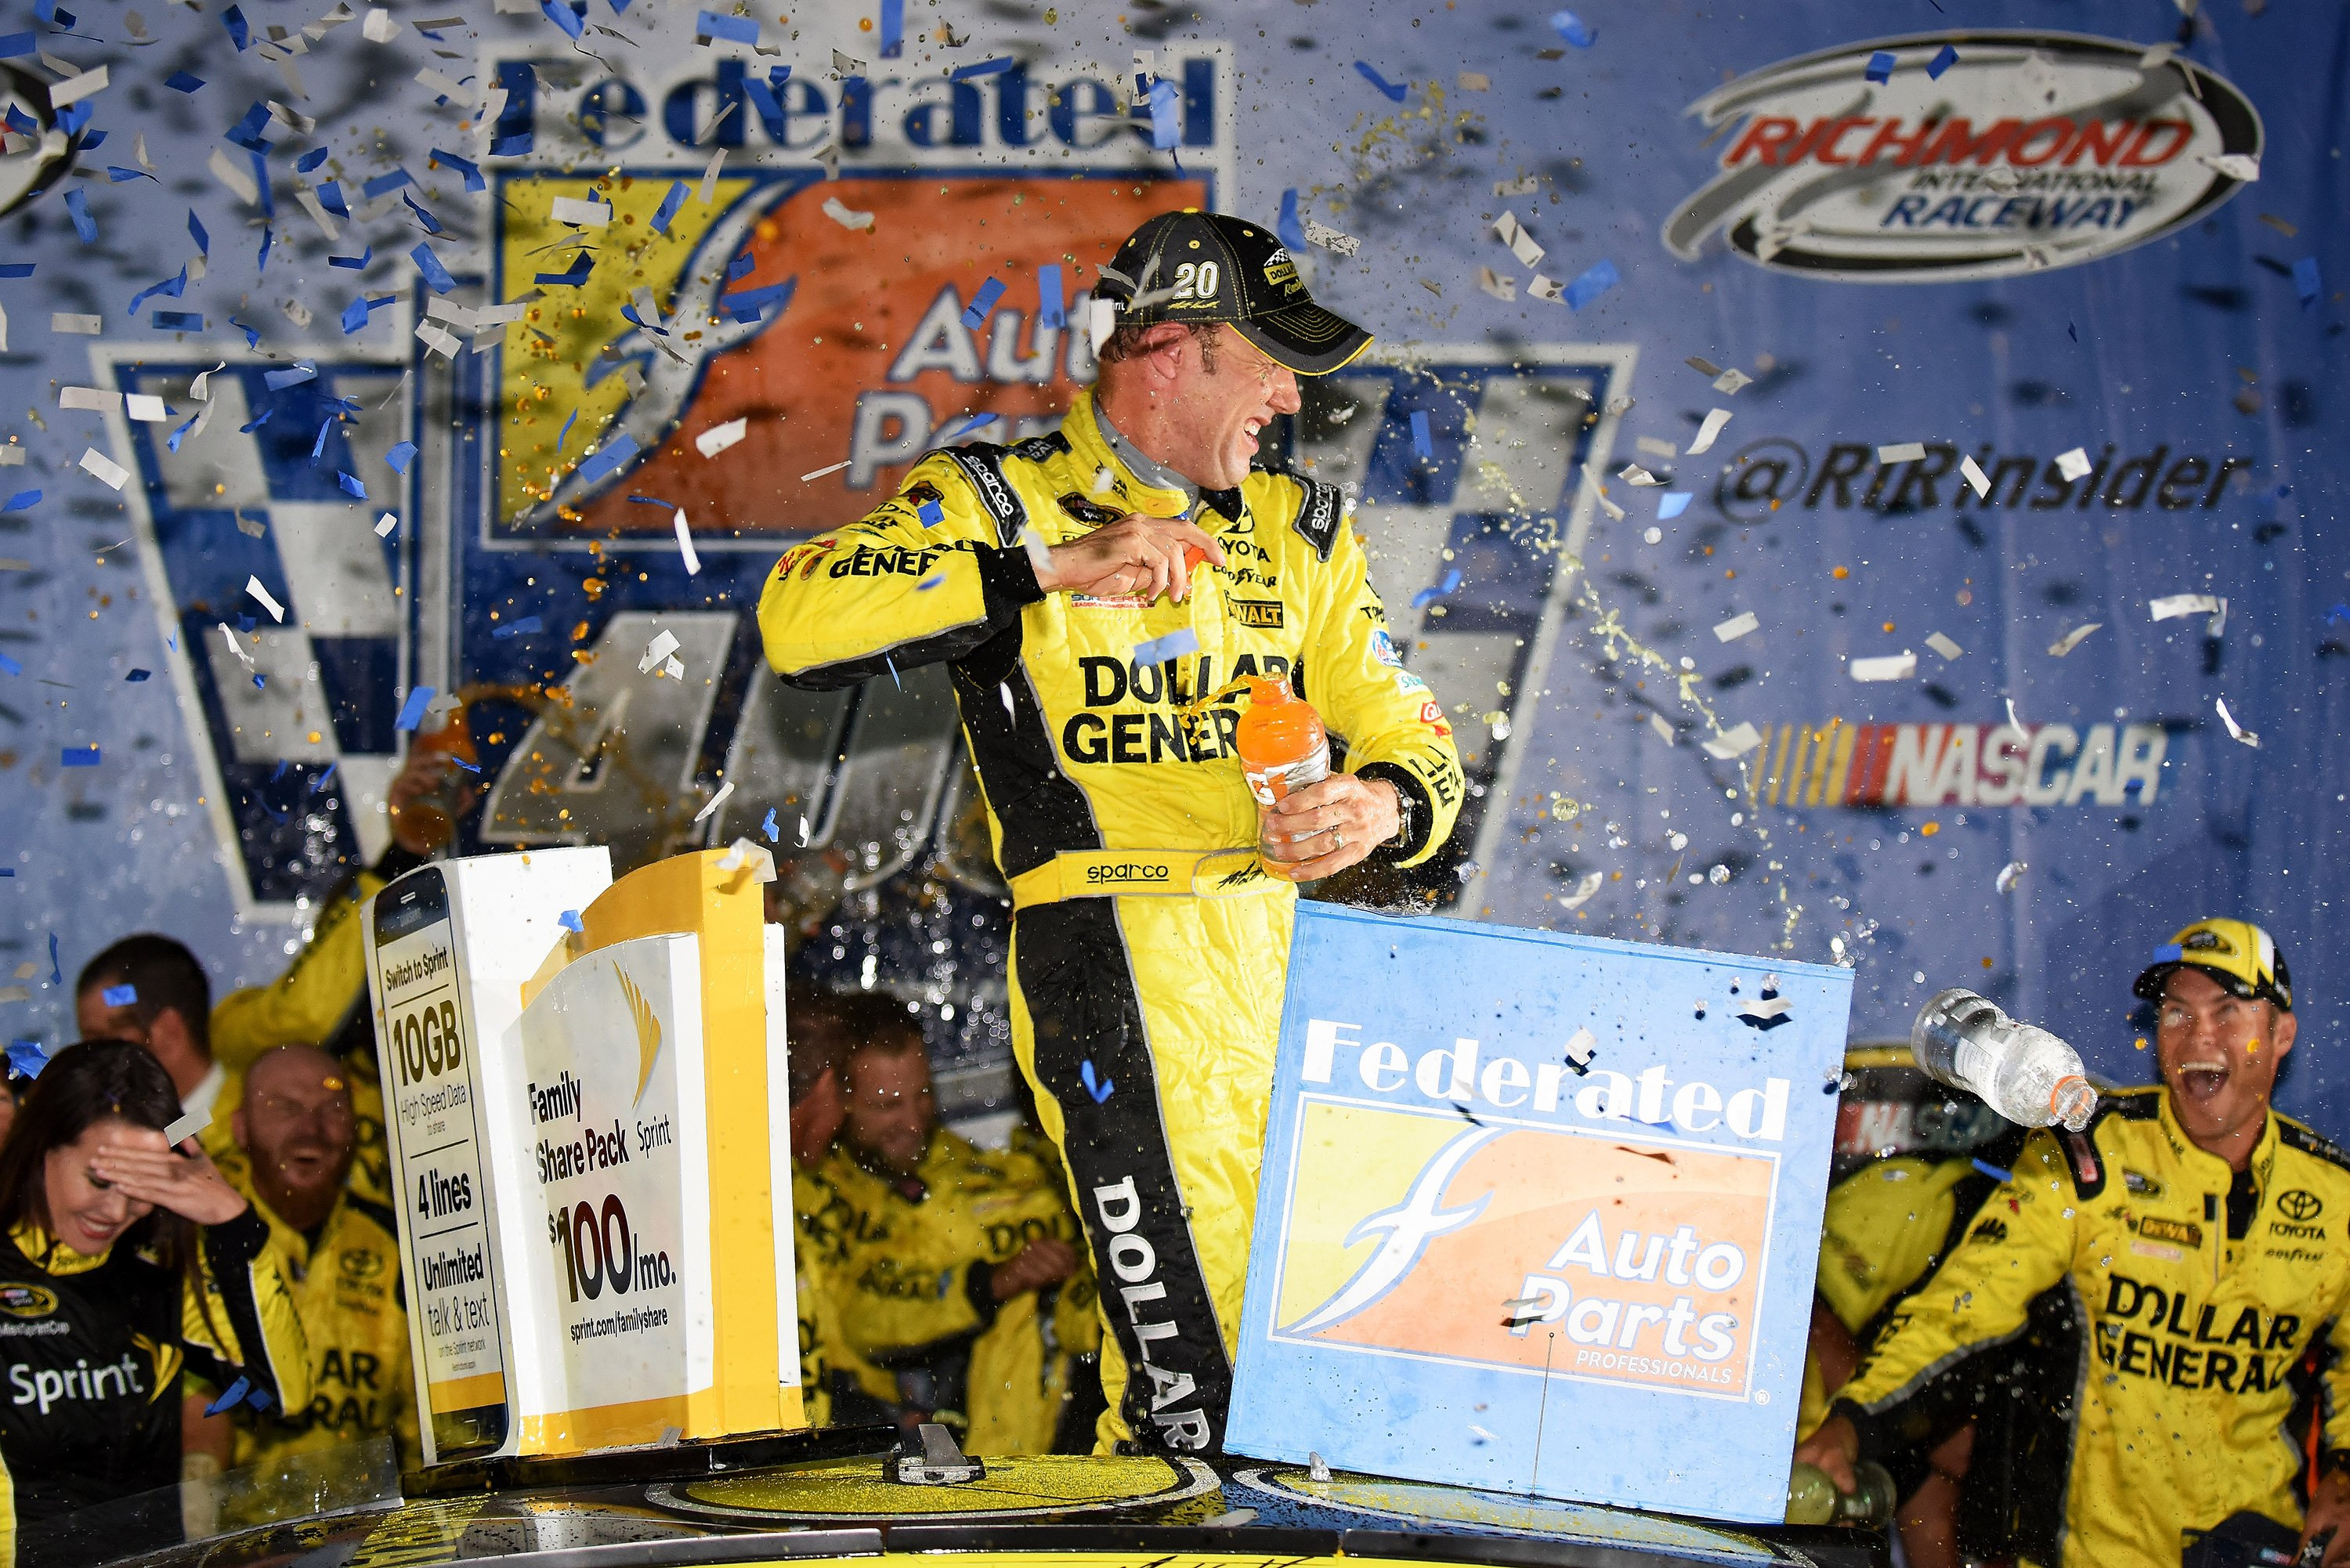 Matt Kenseth wins at Richmond Raceway